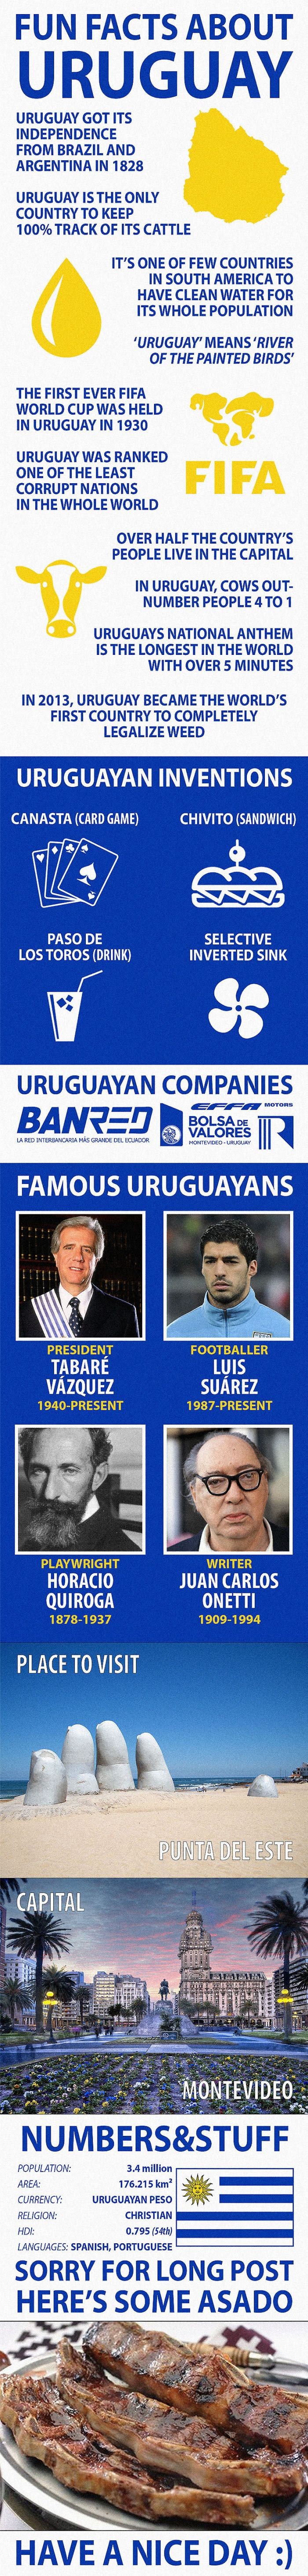 Fun Facts about Uruguay